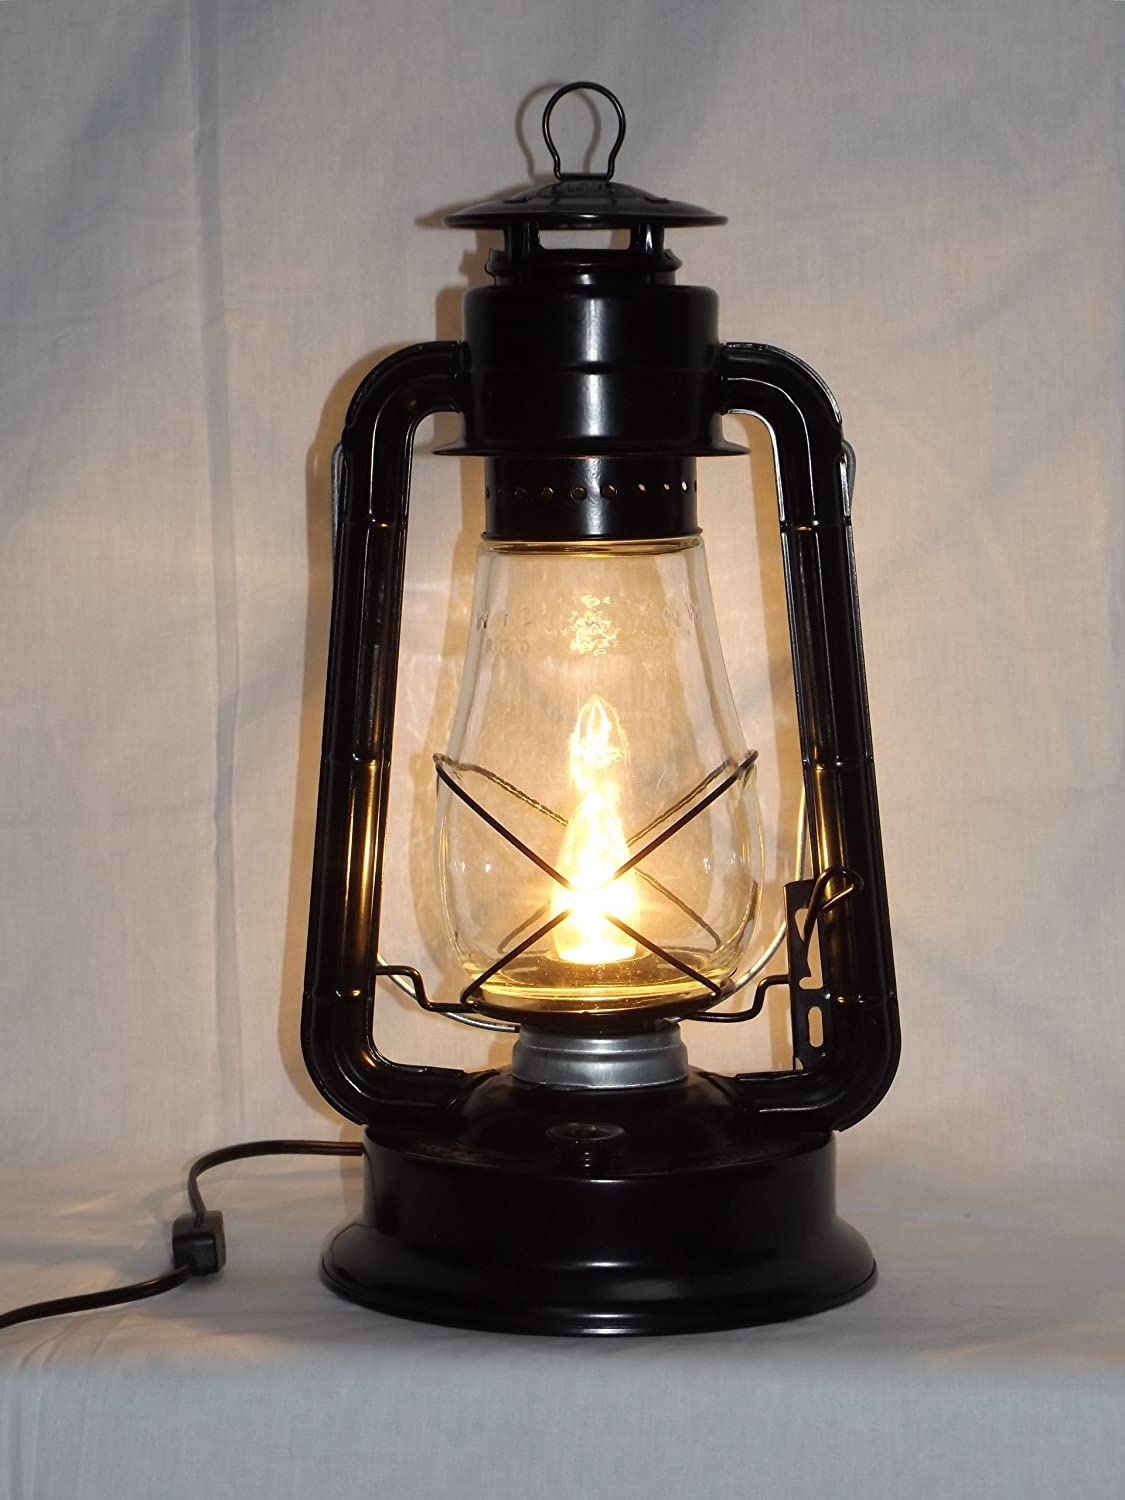 Dietz blizzard vintage style electric lantern table lamp black dietz blizzard vintage style electric lantern table lamp black night lights amazon arubaitofo Images